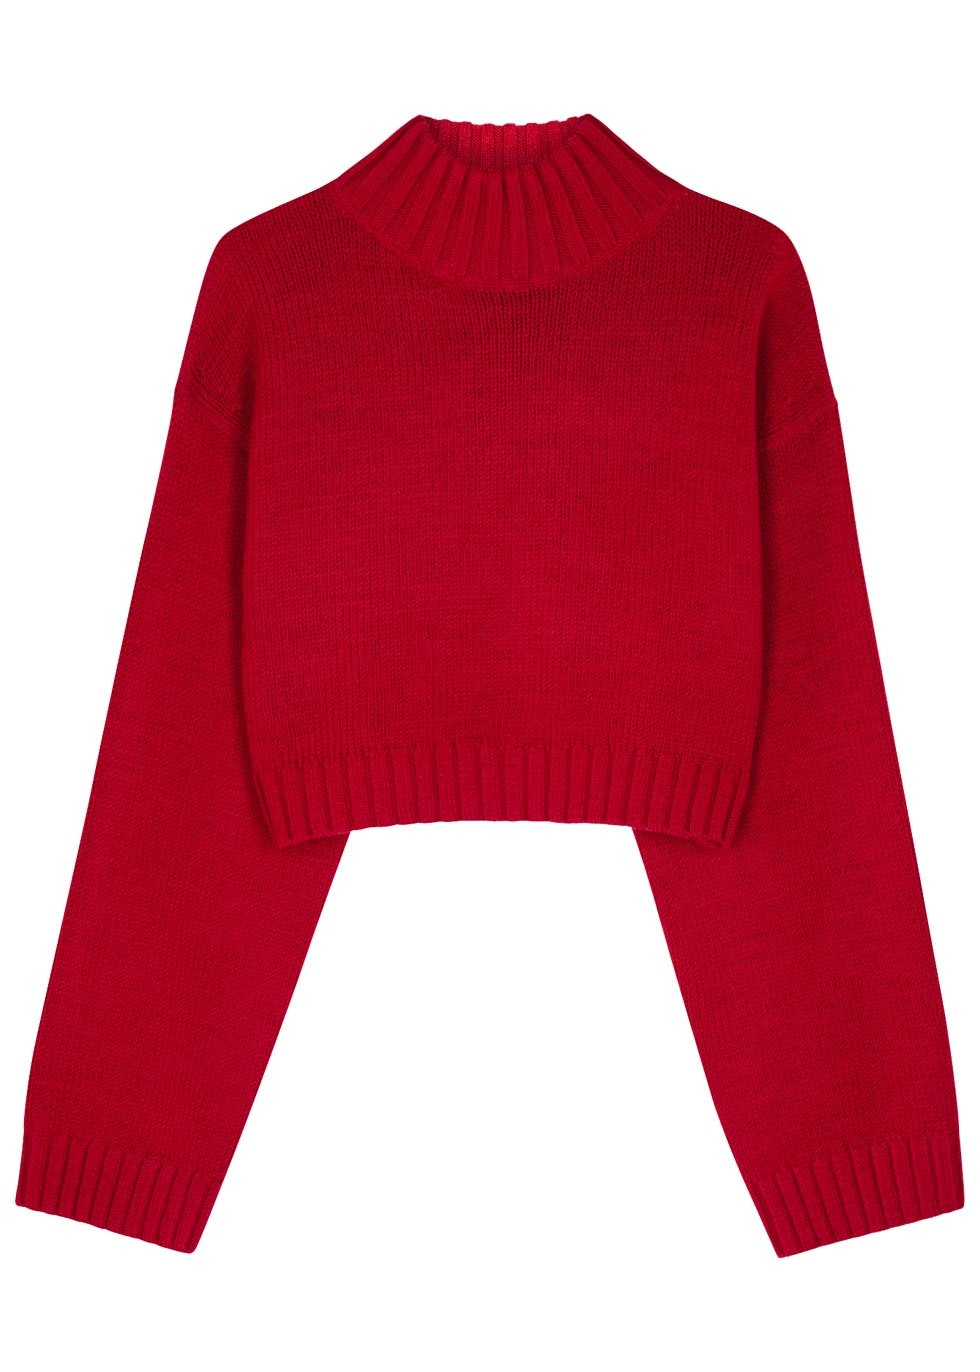 Red Cropped Wool Blend Jumper - pattern: plain; sleeve style: sleeveless; neckline: high neck; length: cropped; style: standard; predominant colour: true red; occasions: casual, creative work; fibres: wool - mix; fit: standard fit; sleeve length: 3/4 length; texture group: knits/crochet; pattern type: knitted - other; season: s/s 2016